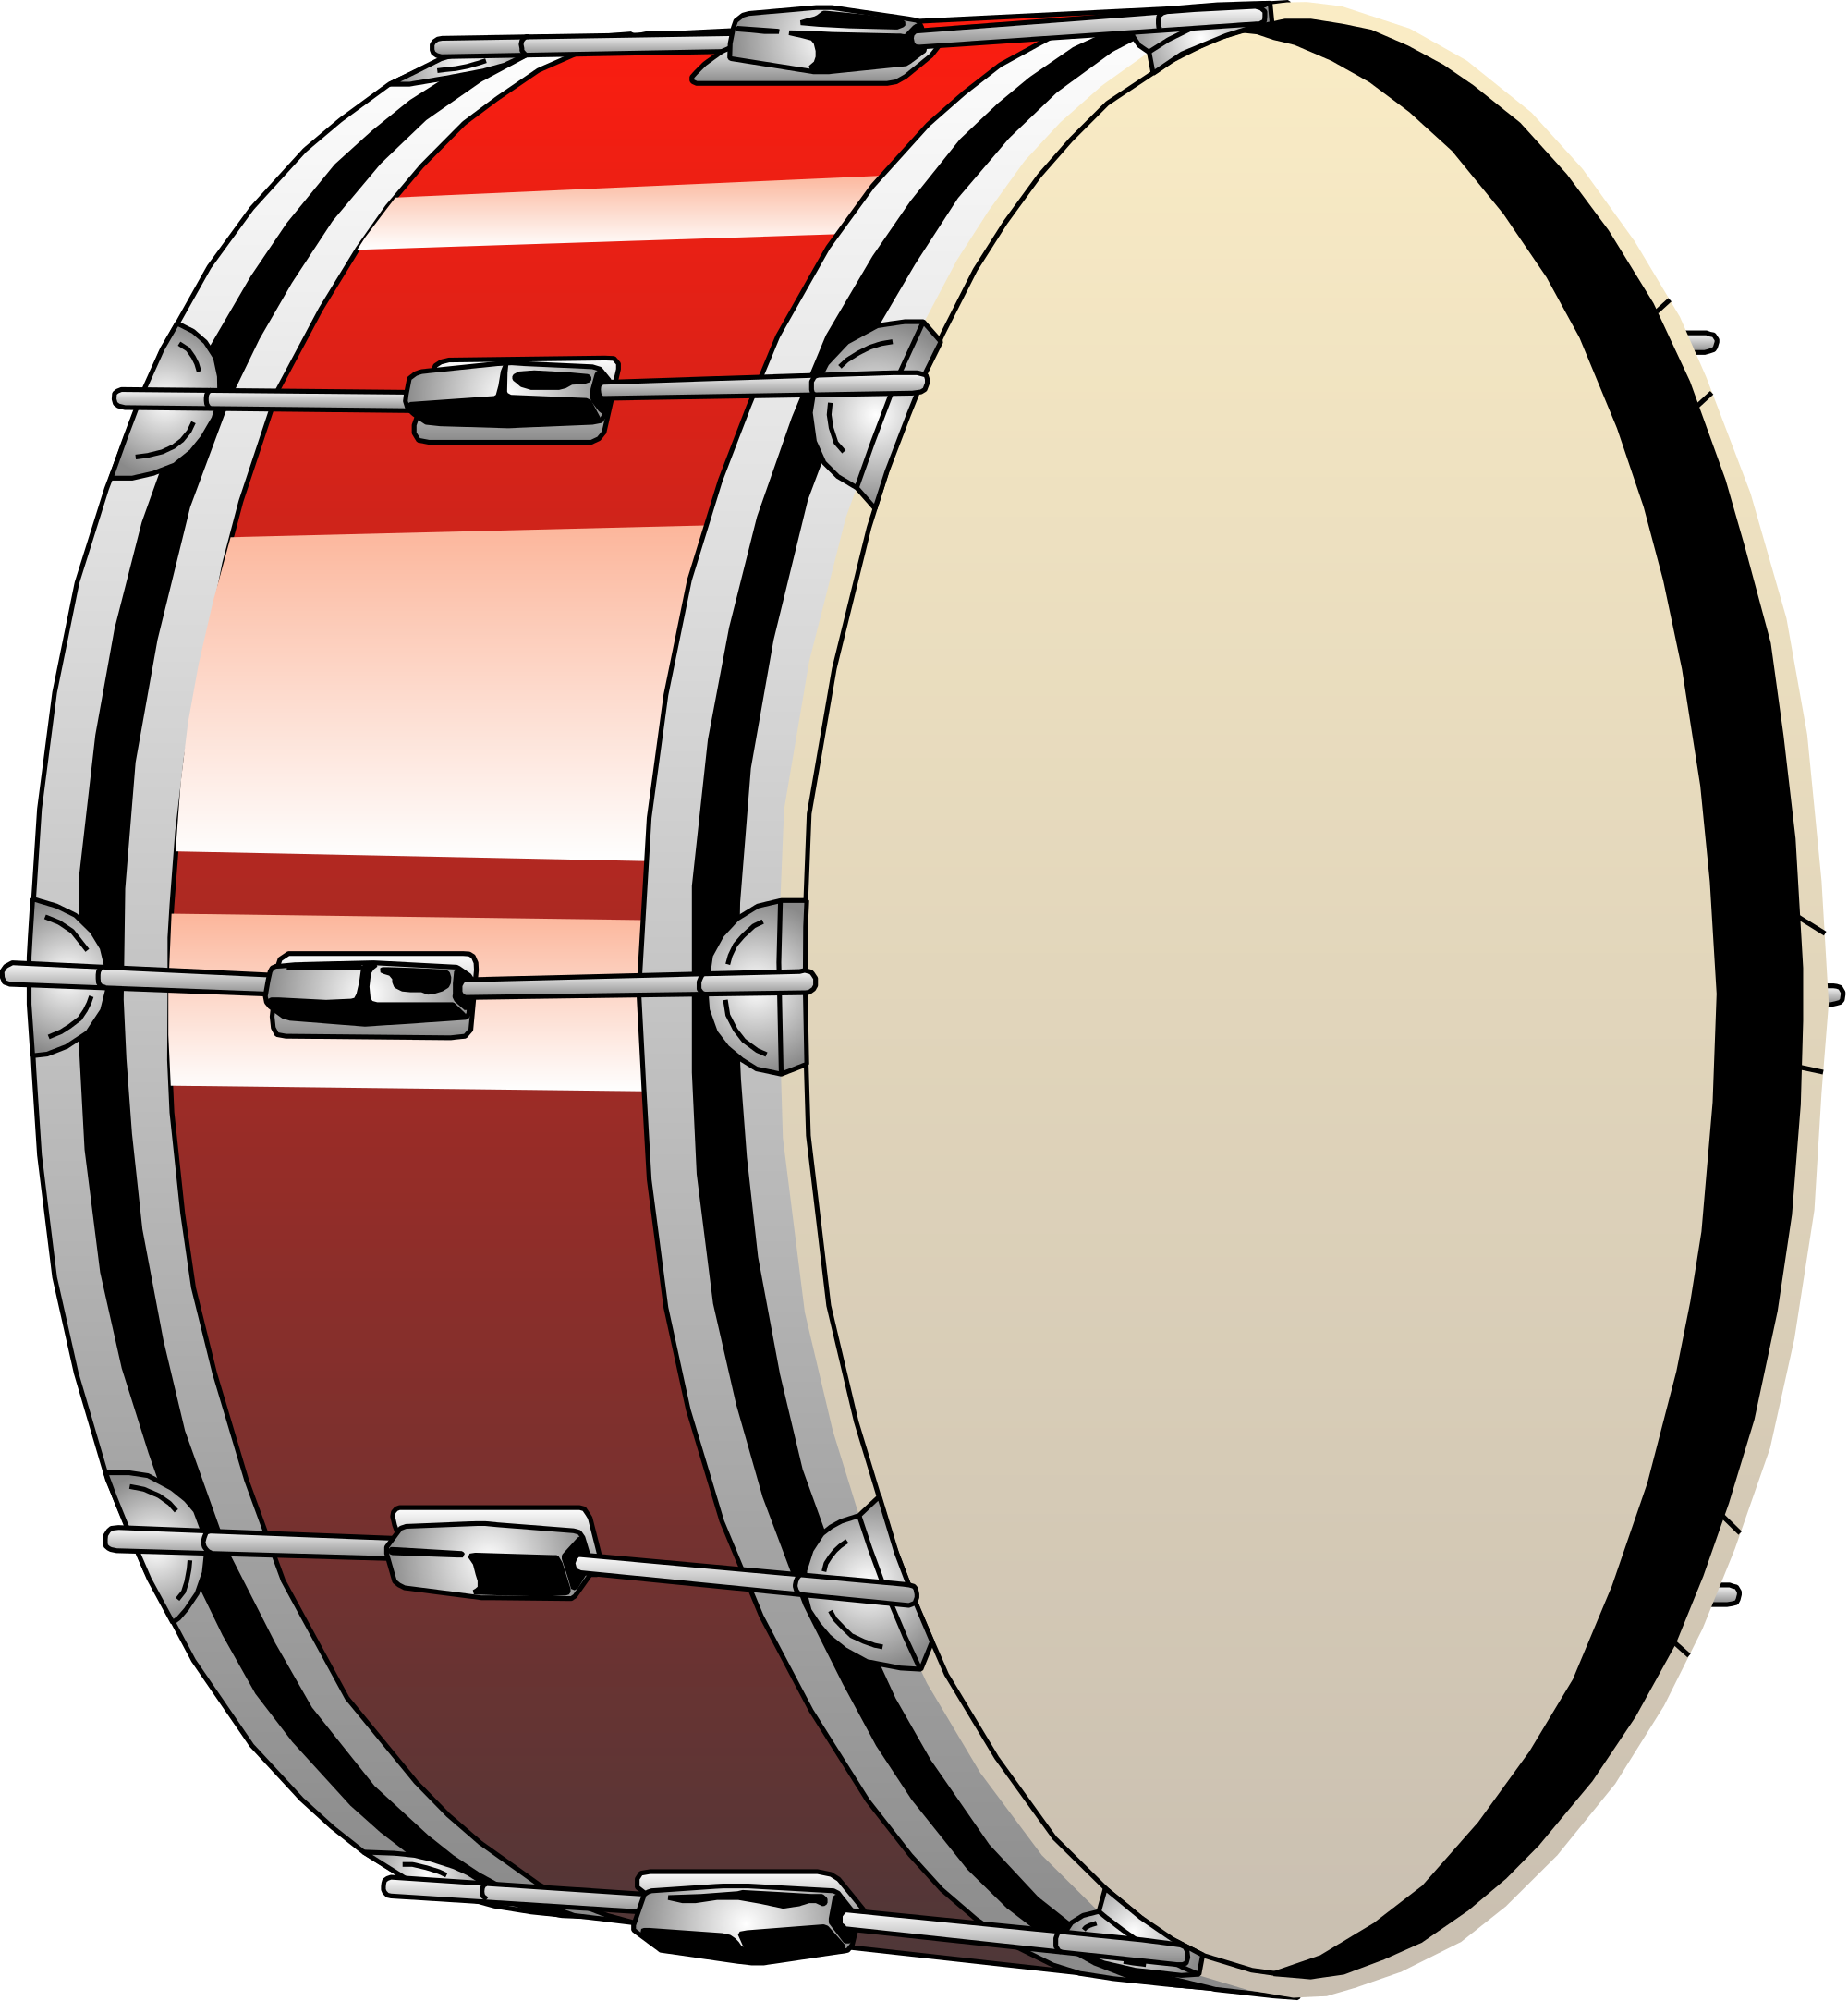 Drums clipart file. Bass drum svg wikimedia